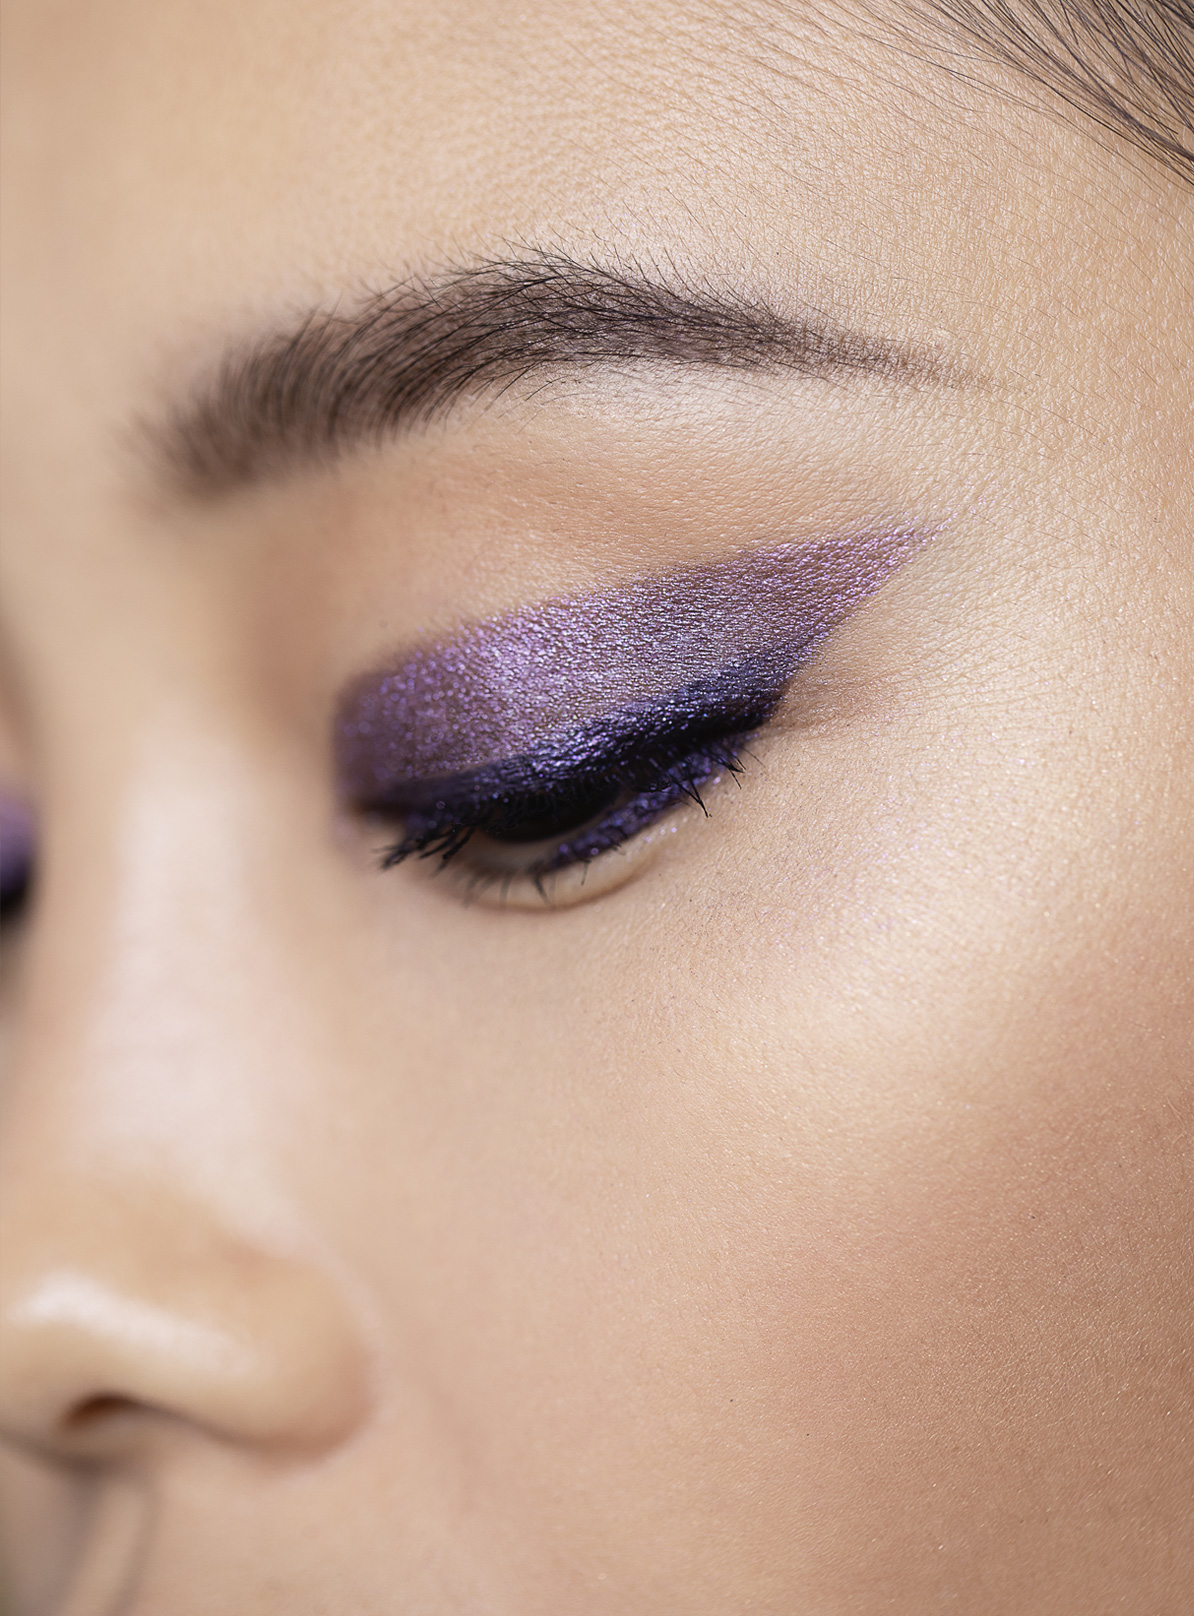 A glamorous look for an unforgettable evening